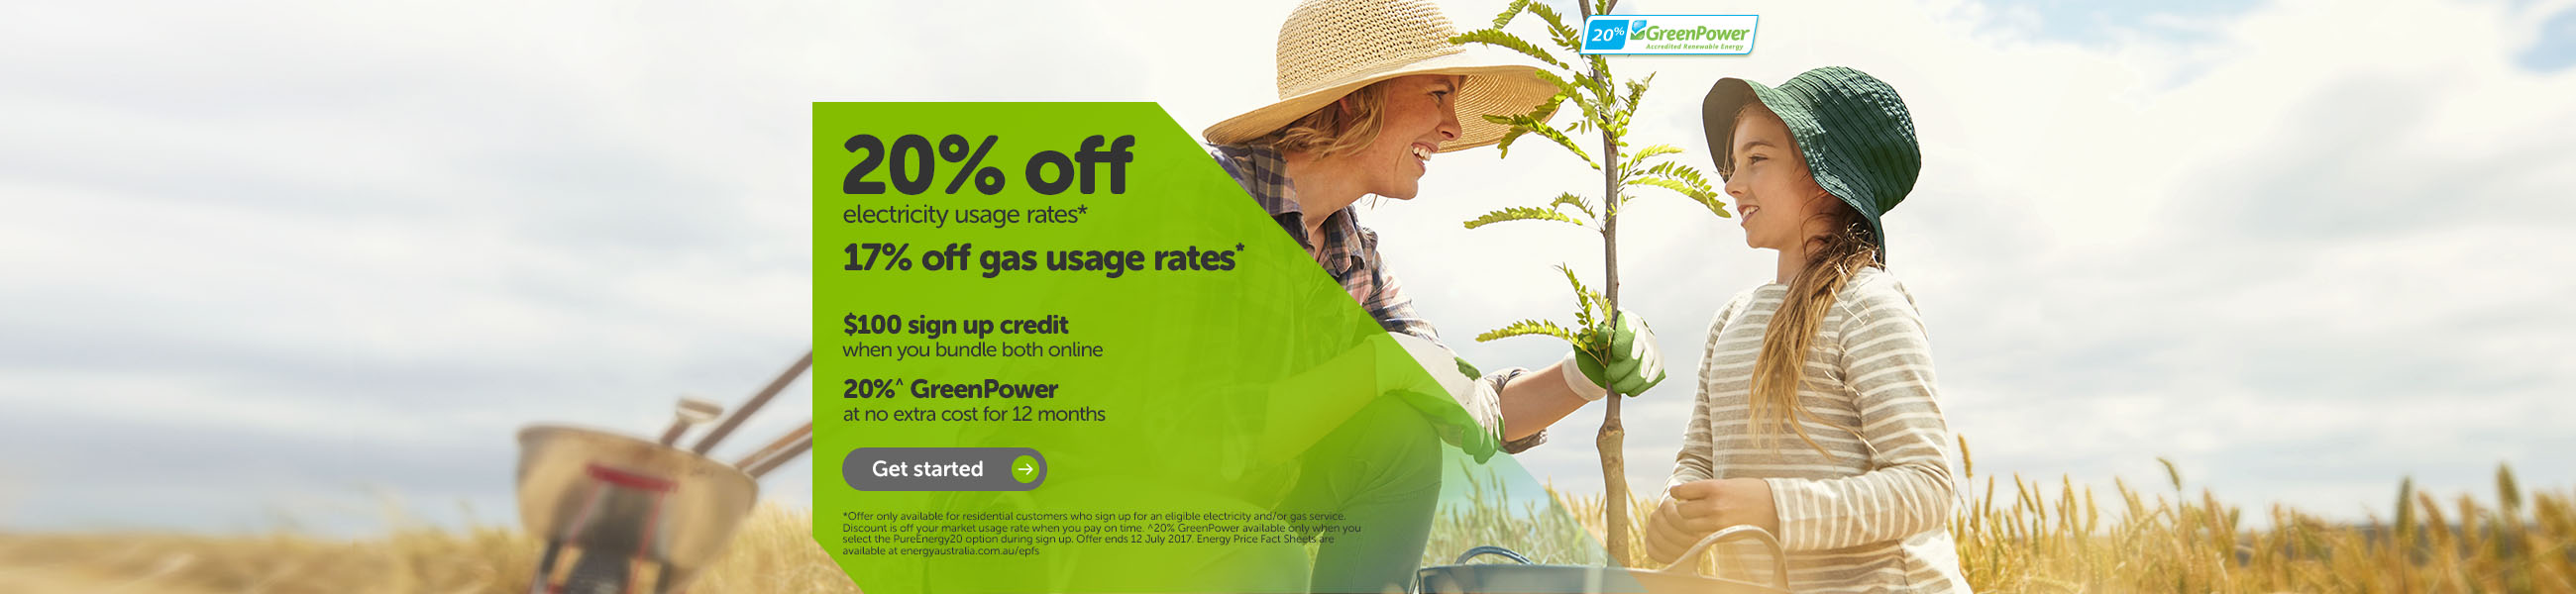 NSW Dual fuel offer